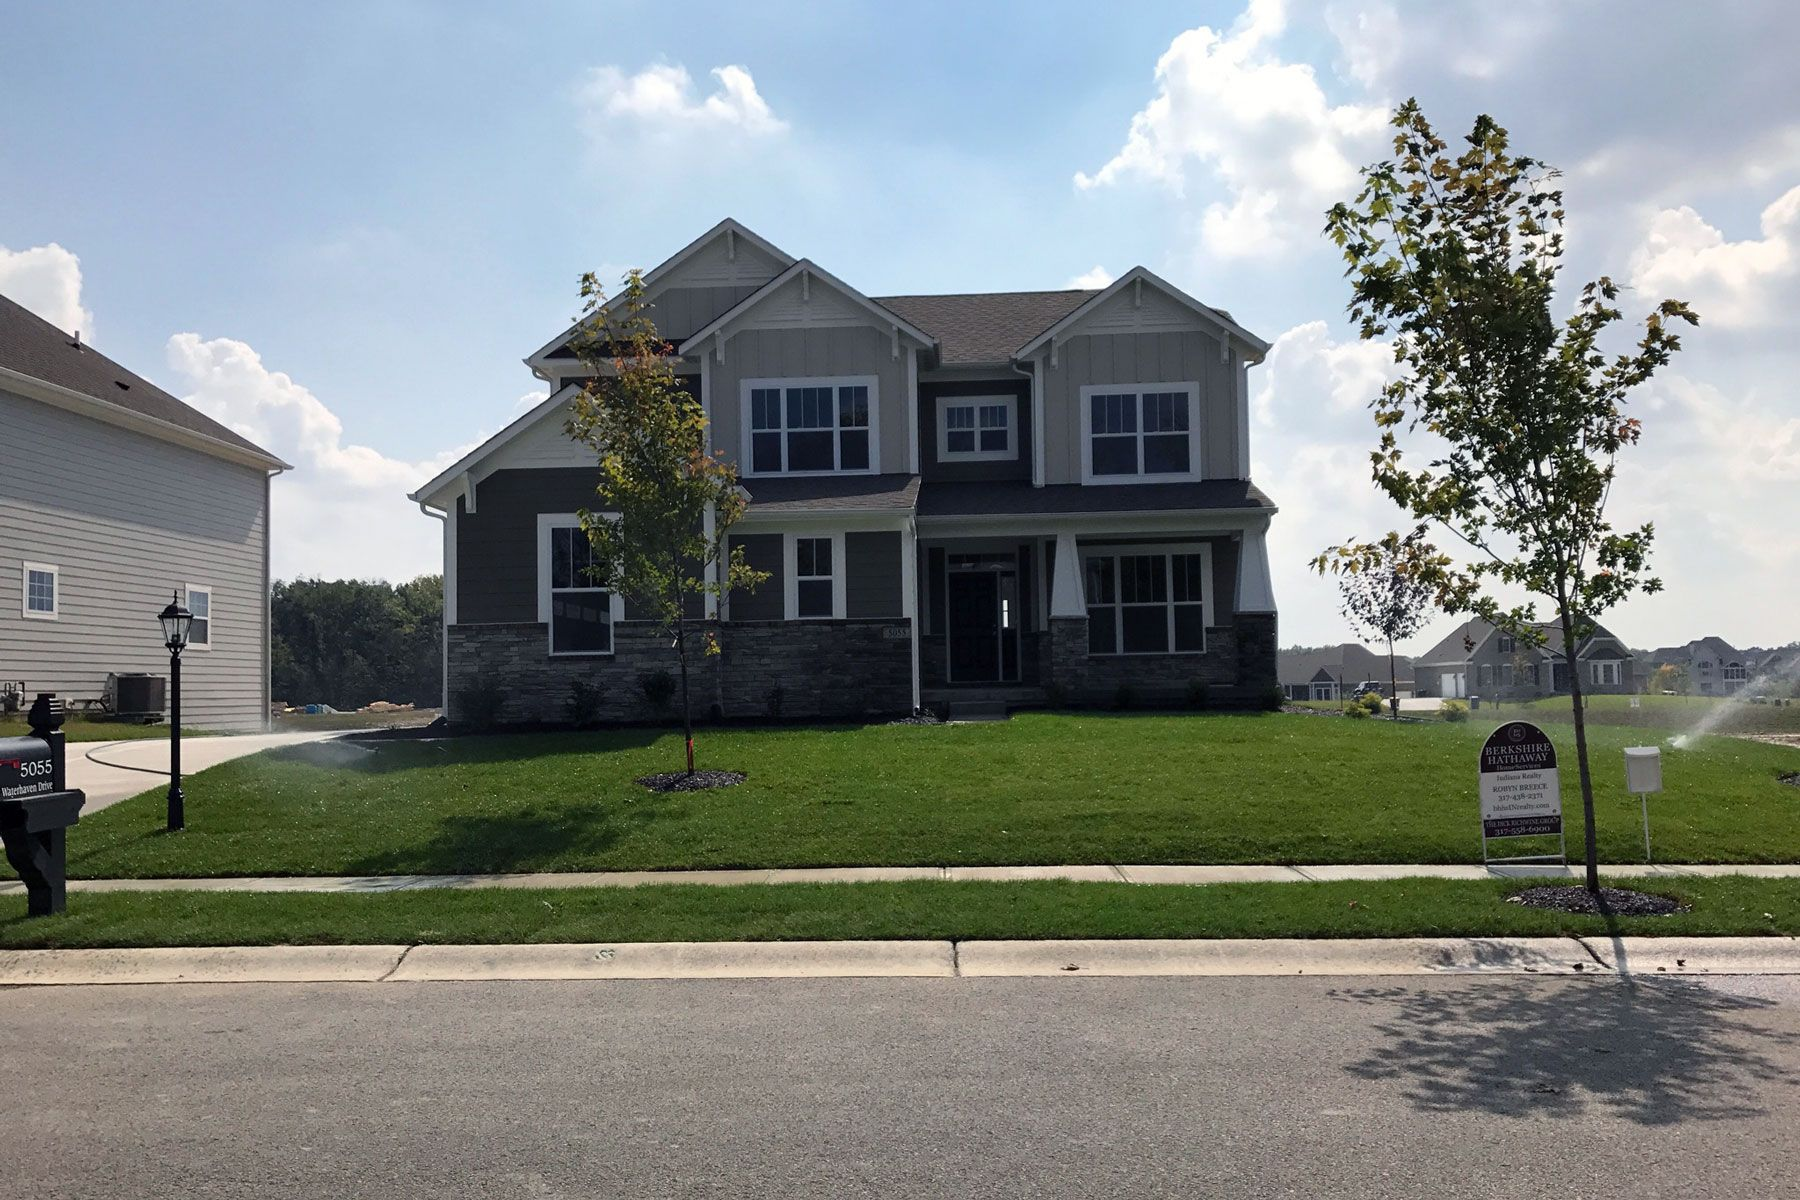 46220 new homes for sale indianapolis indiana page 8